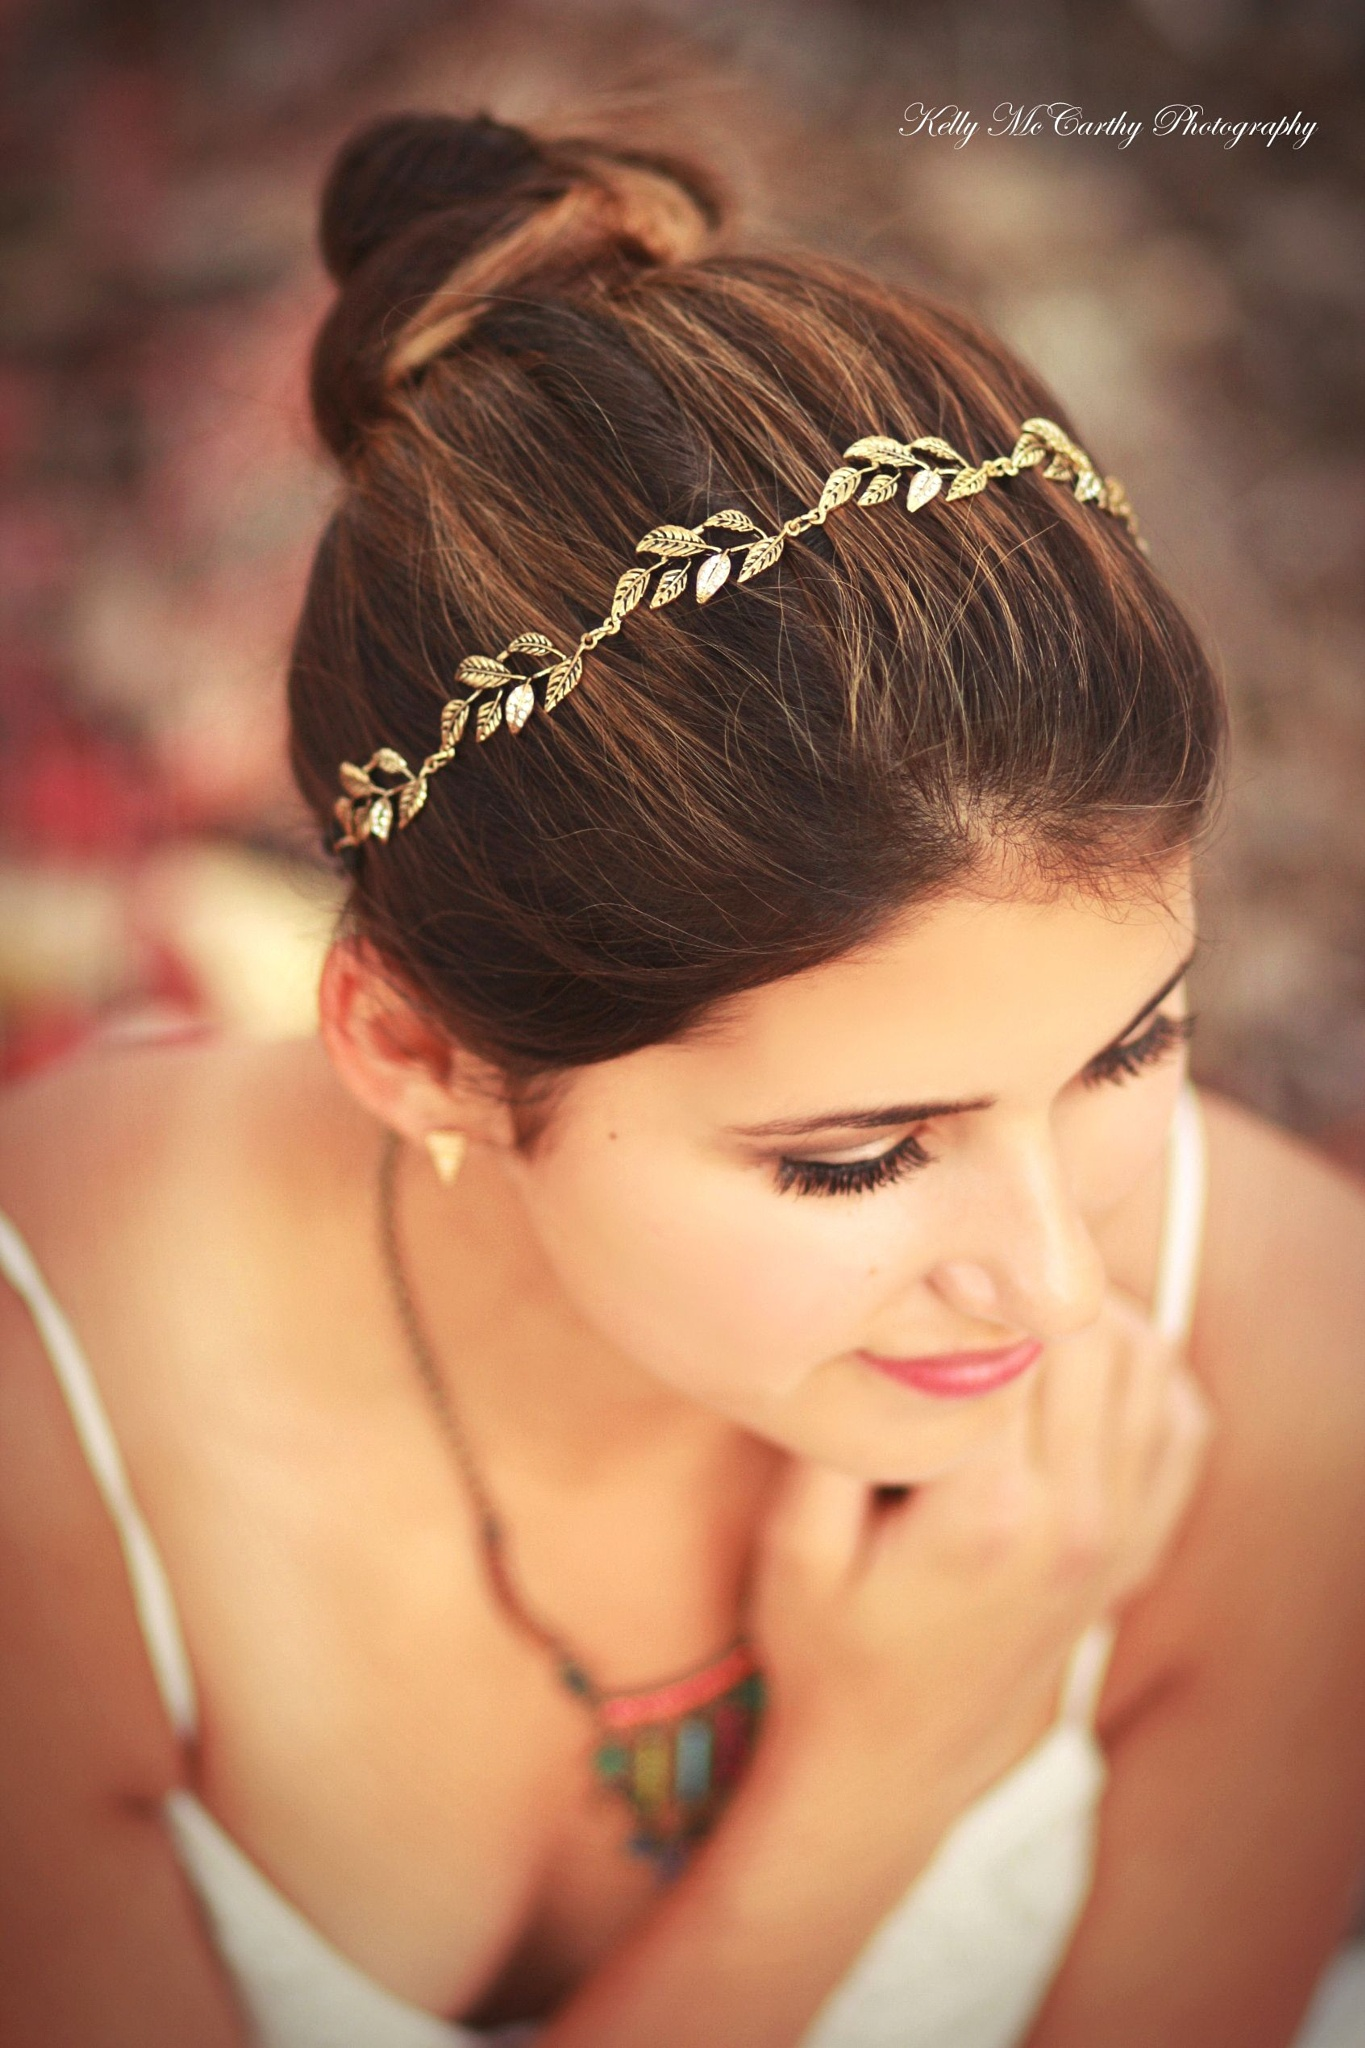 Demeter's Circlet by Kelly McCarthy Photography